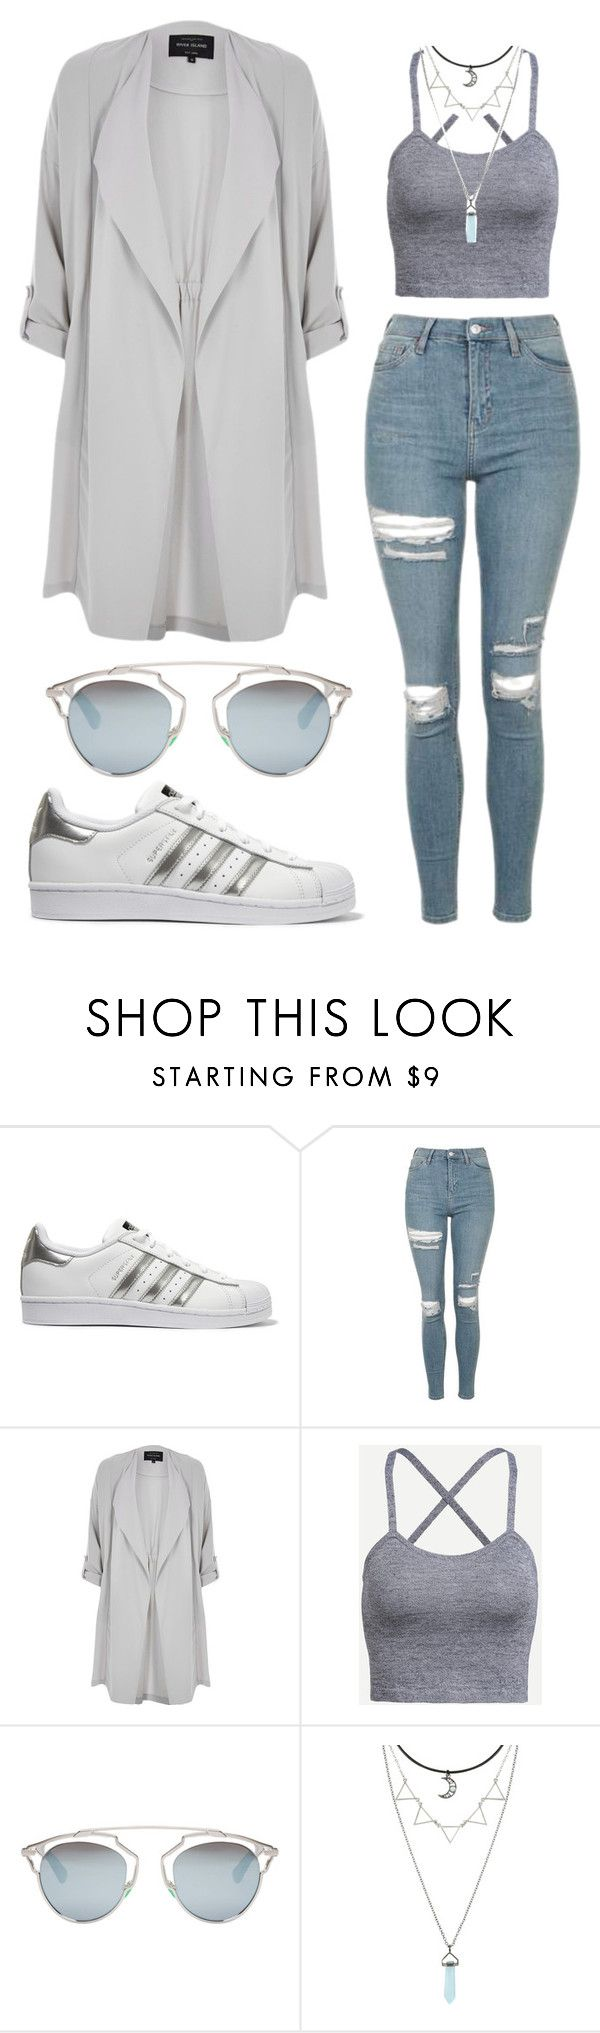 """""""Untitled #1588"""" by aginica ❤ liked on Polyvore featuring adidas Originals, Topshop, River Island and Christian Dior"""